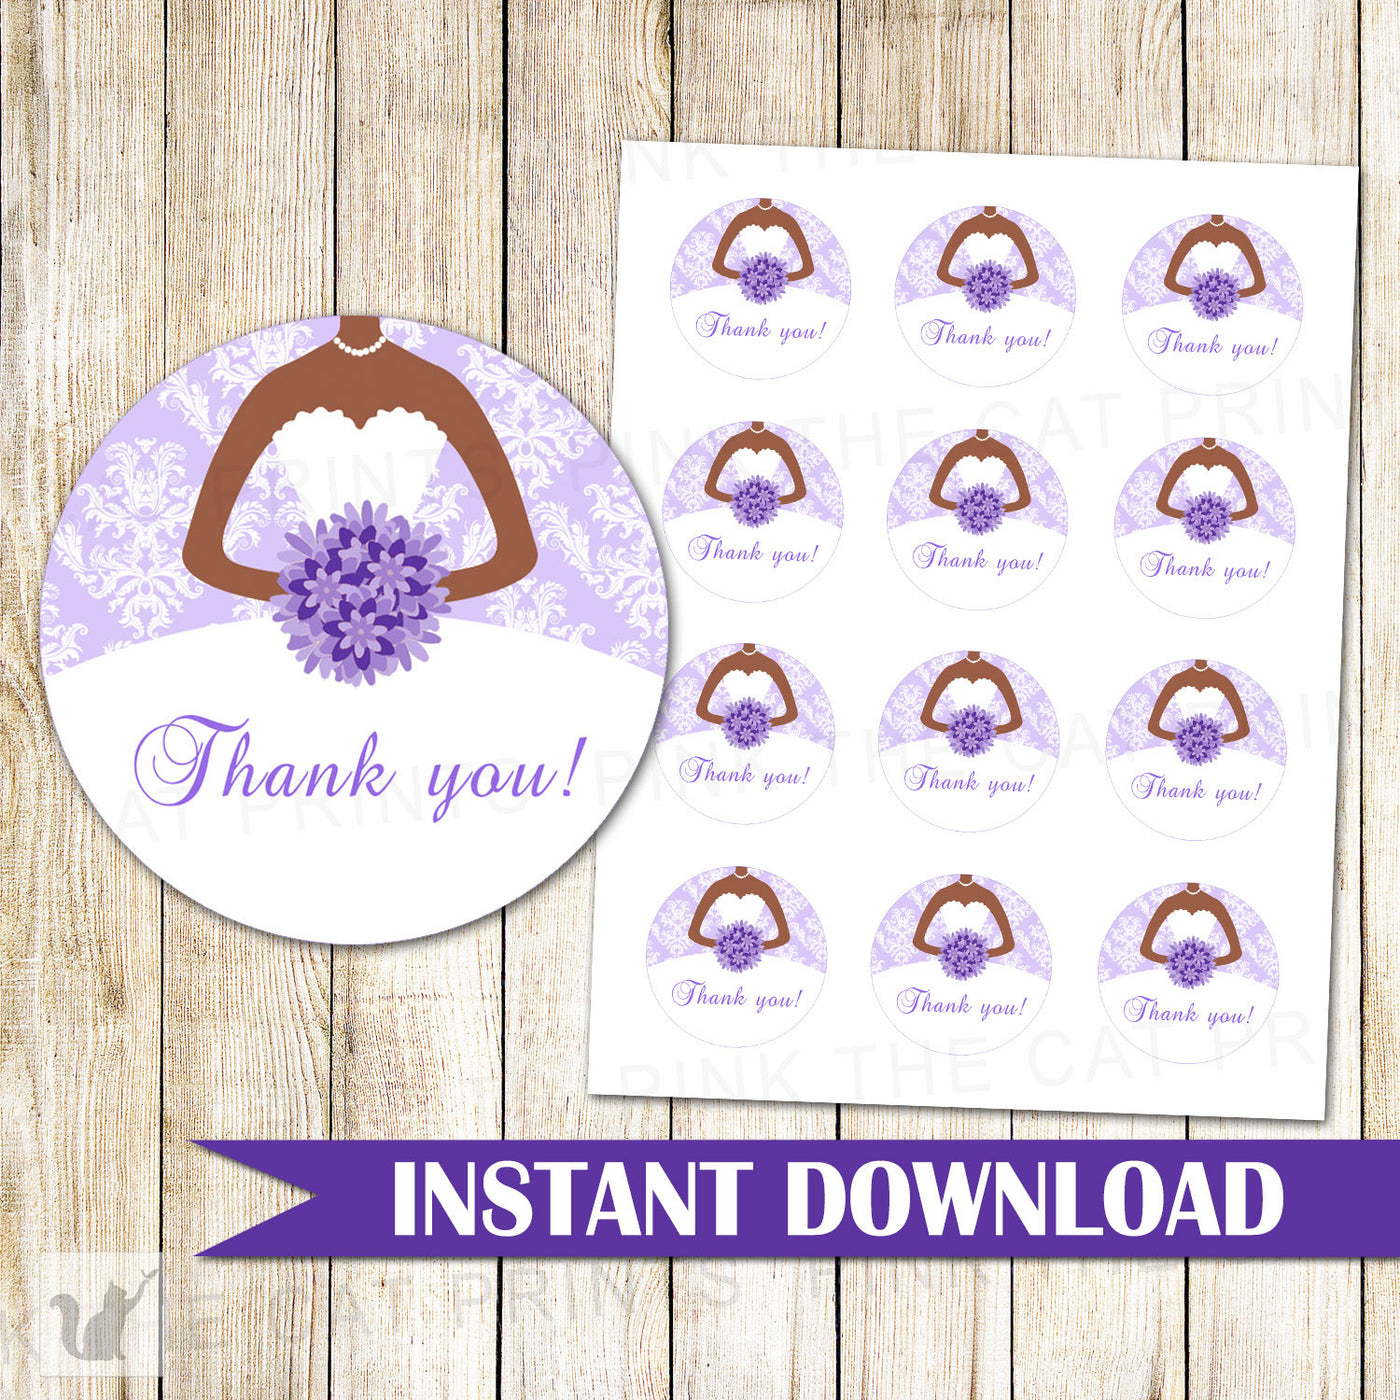 image about Bridal Shower Gift Tags Free Printable identify Bridal Shower Present Label Like Sticker Tag Lavender Gown